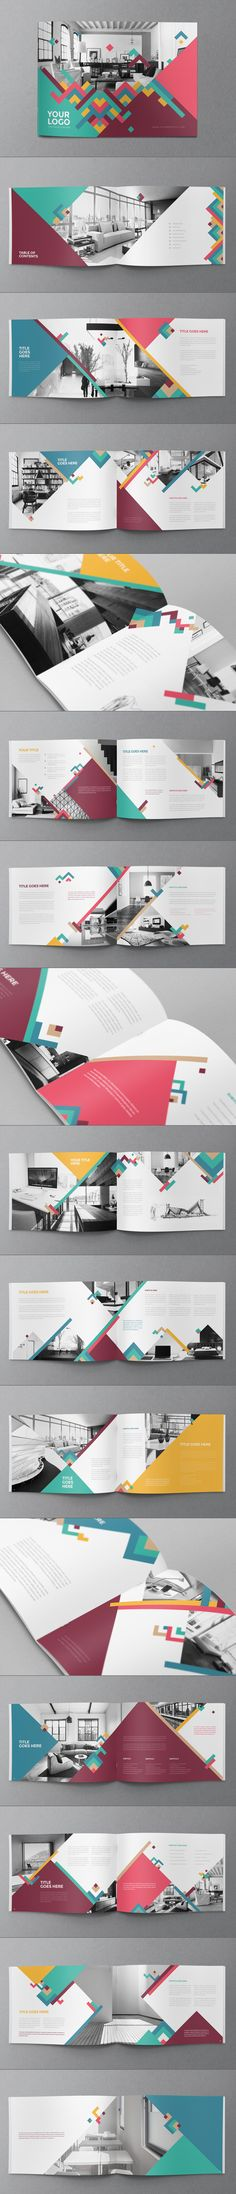 Colorful Pattern Brochure 2. Download here: http://graphicriver.net/item/colorful-pattern-brochure-2/8113993?ref=abradesign #design #brochure